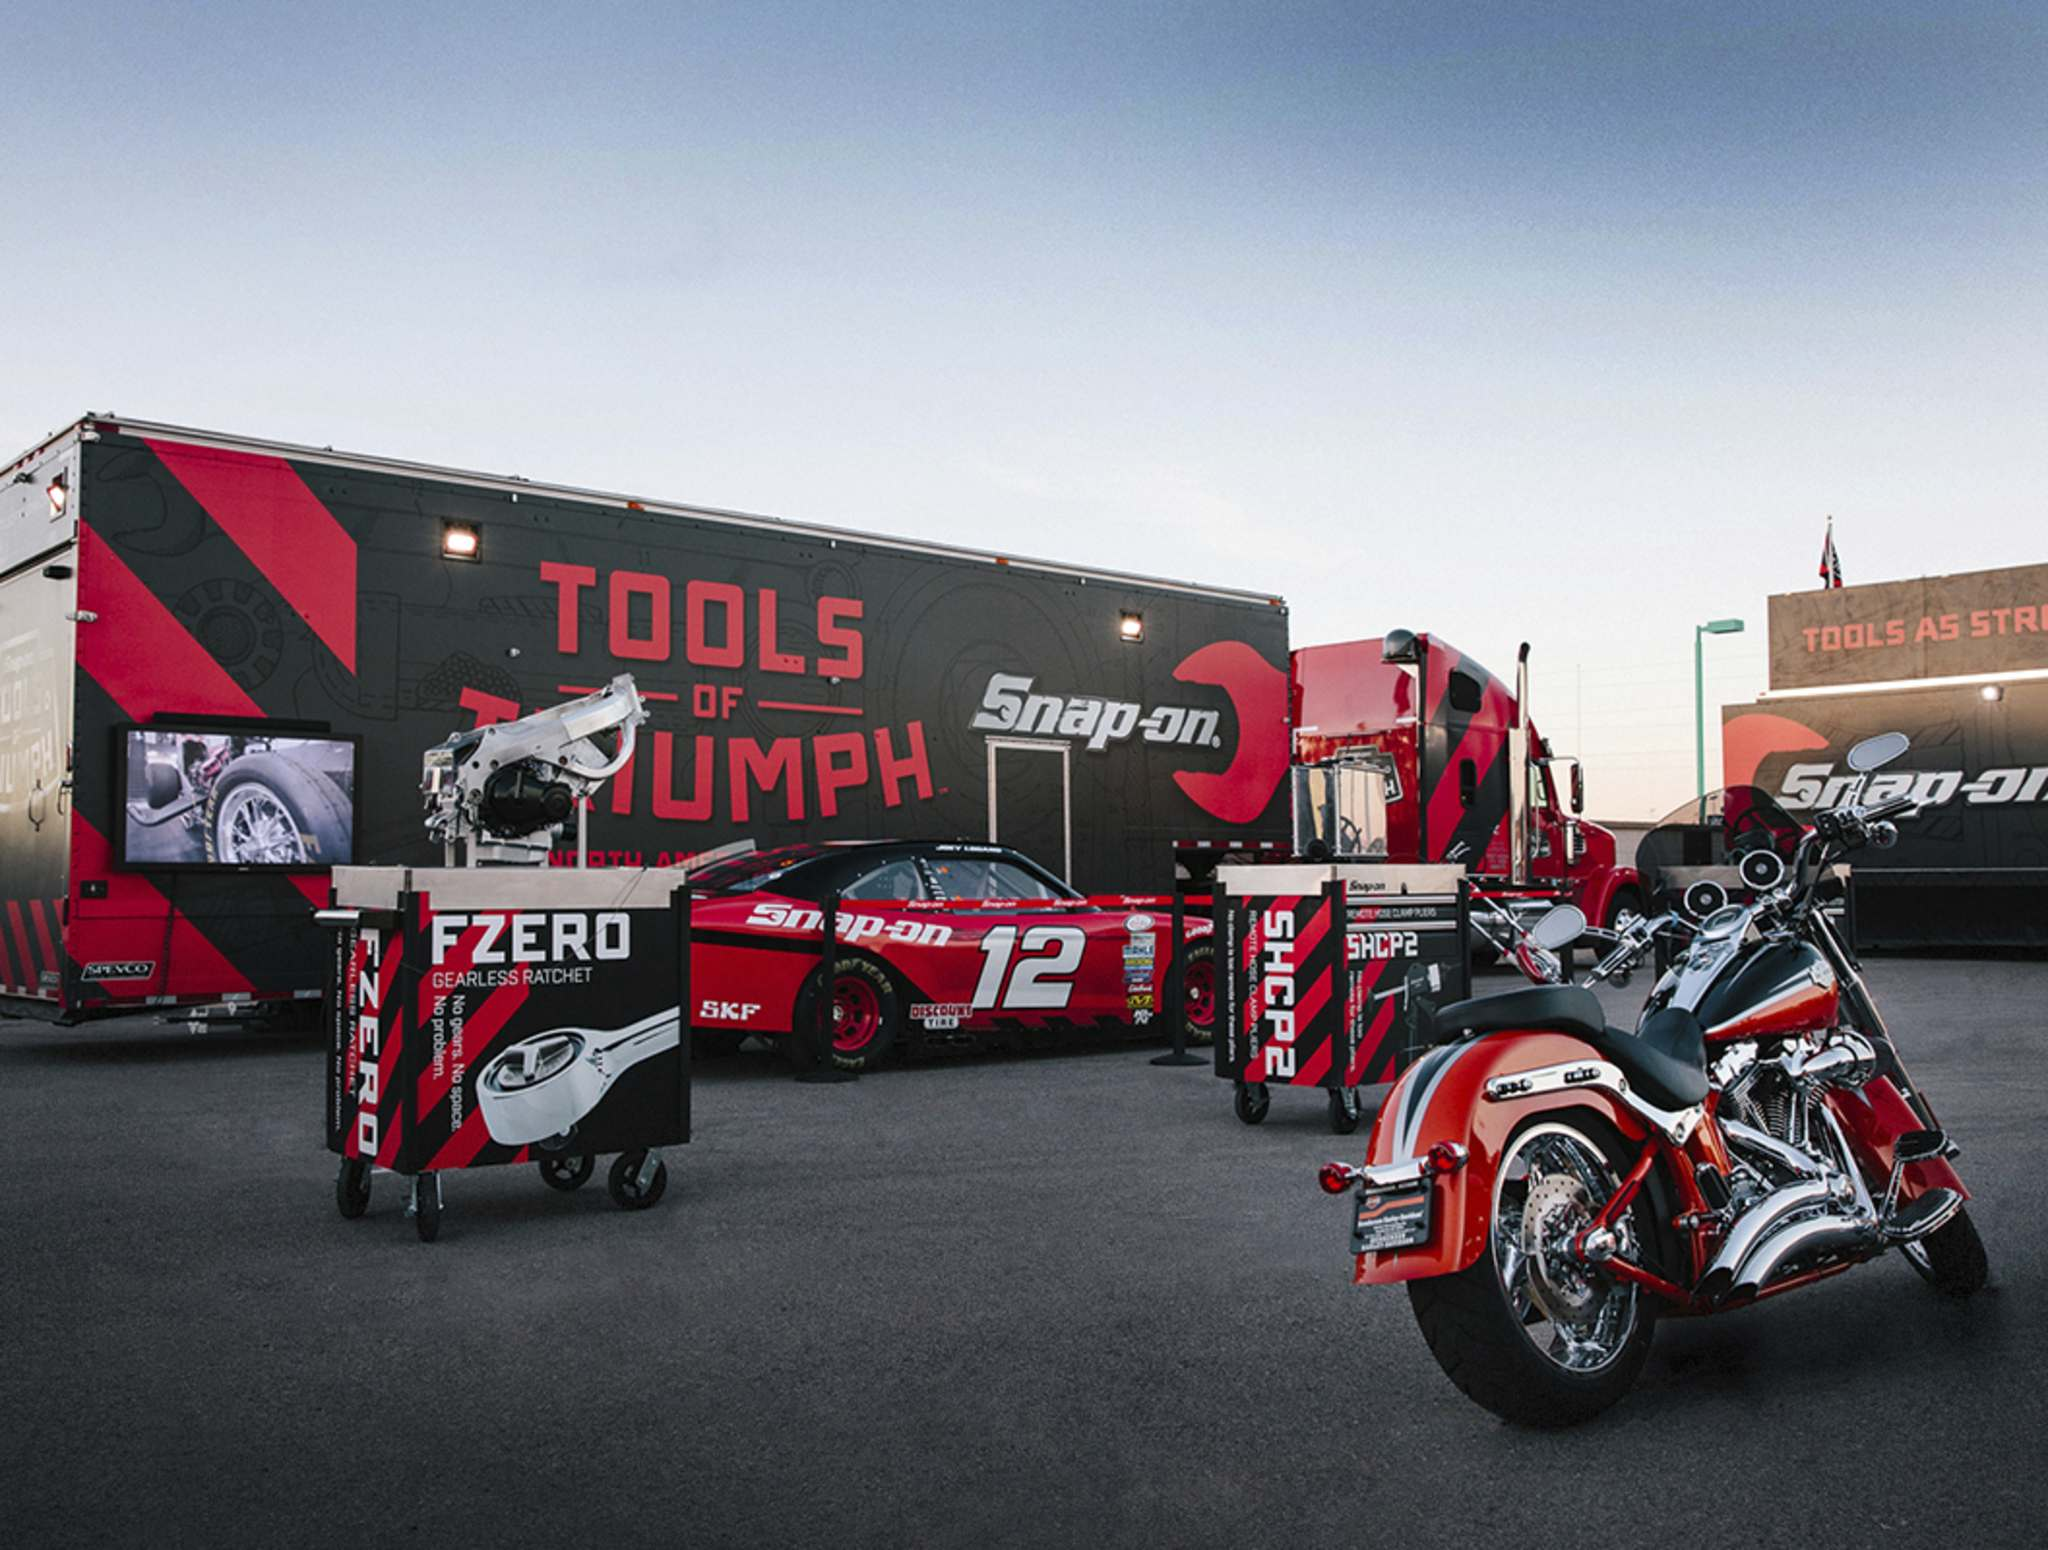 SuppliedThe Snap-on Tools of Triumph event is coming to Winnipeg on Tuesday, bringing with it the promise of great fun.